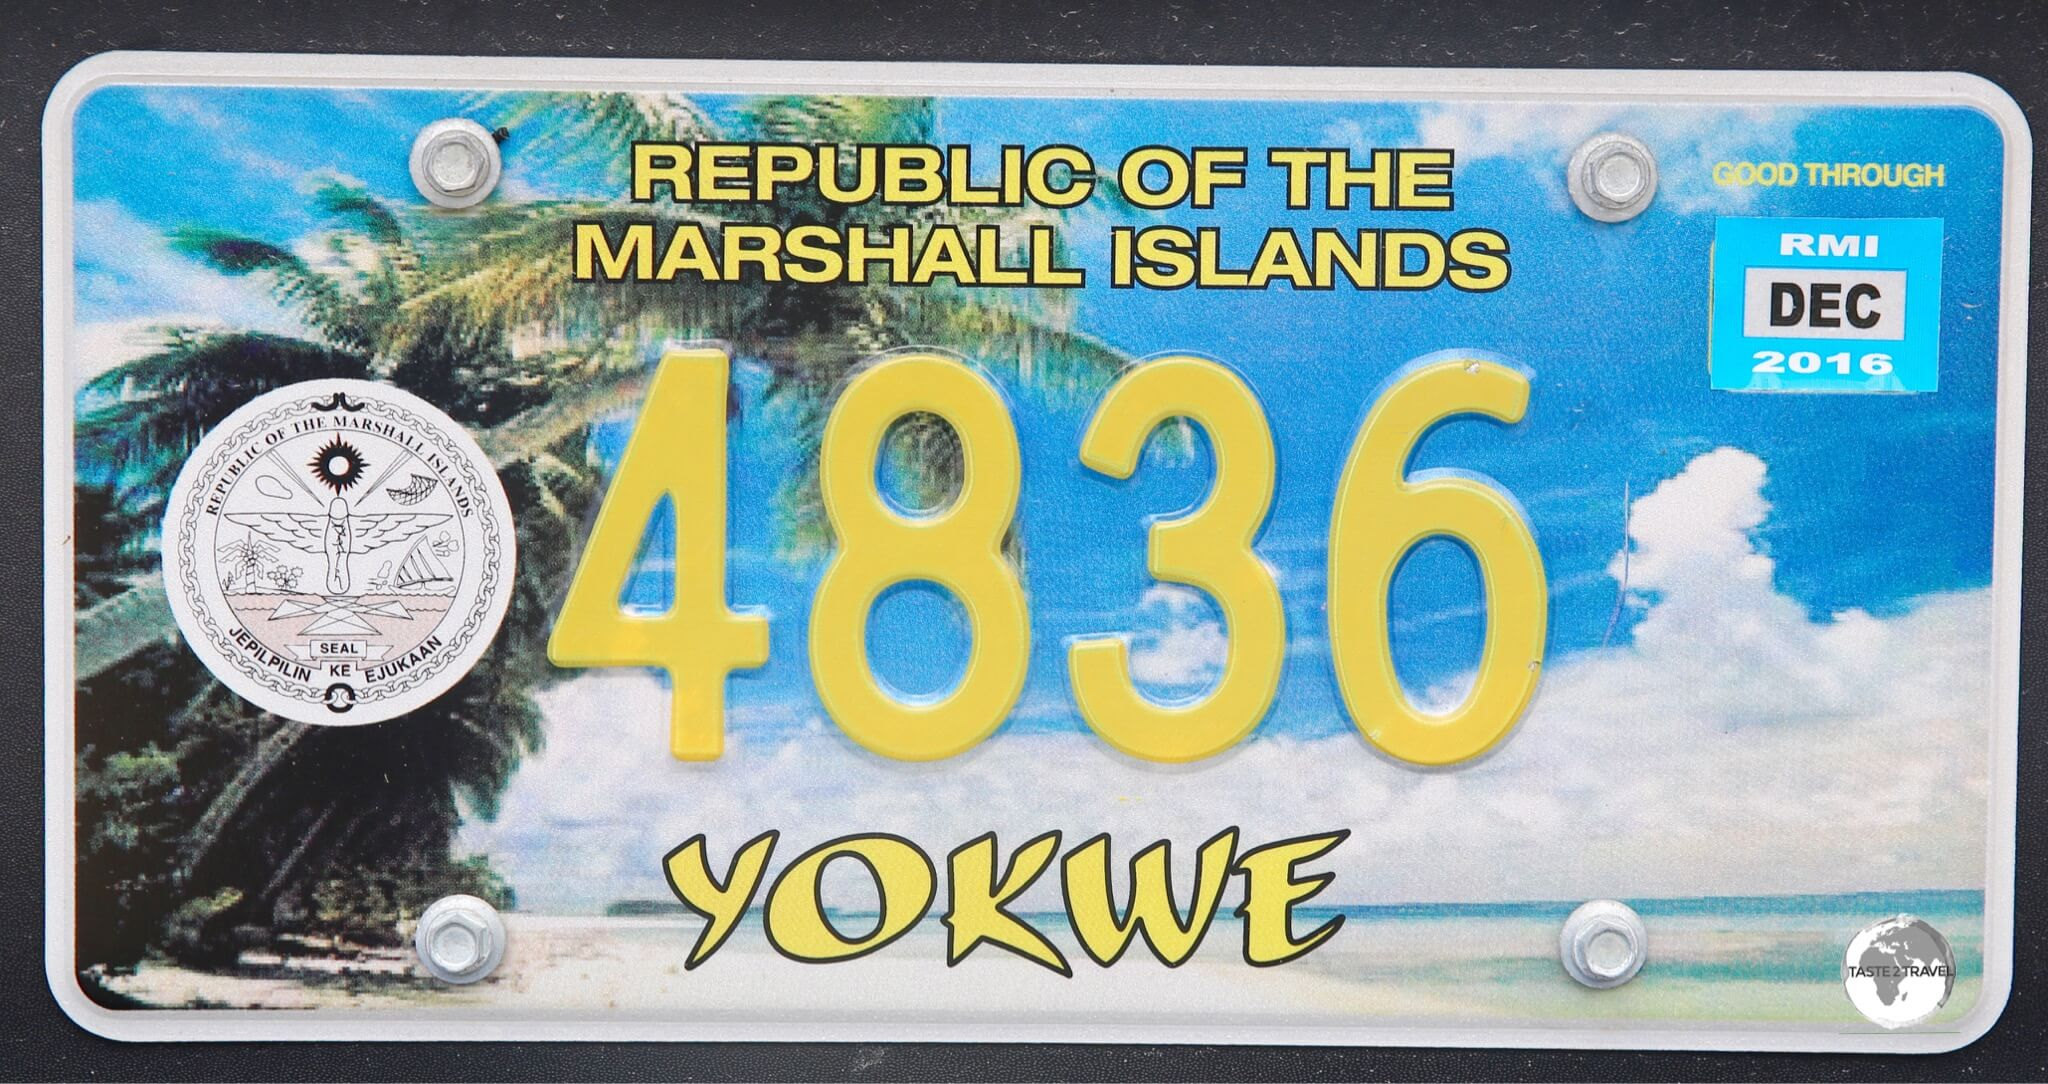 Marshall Islands License Plate.